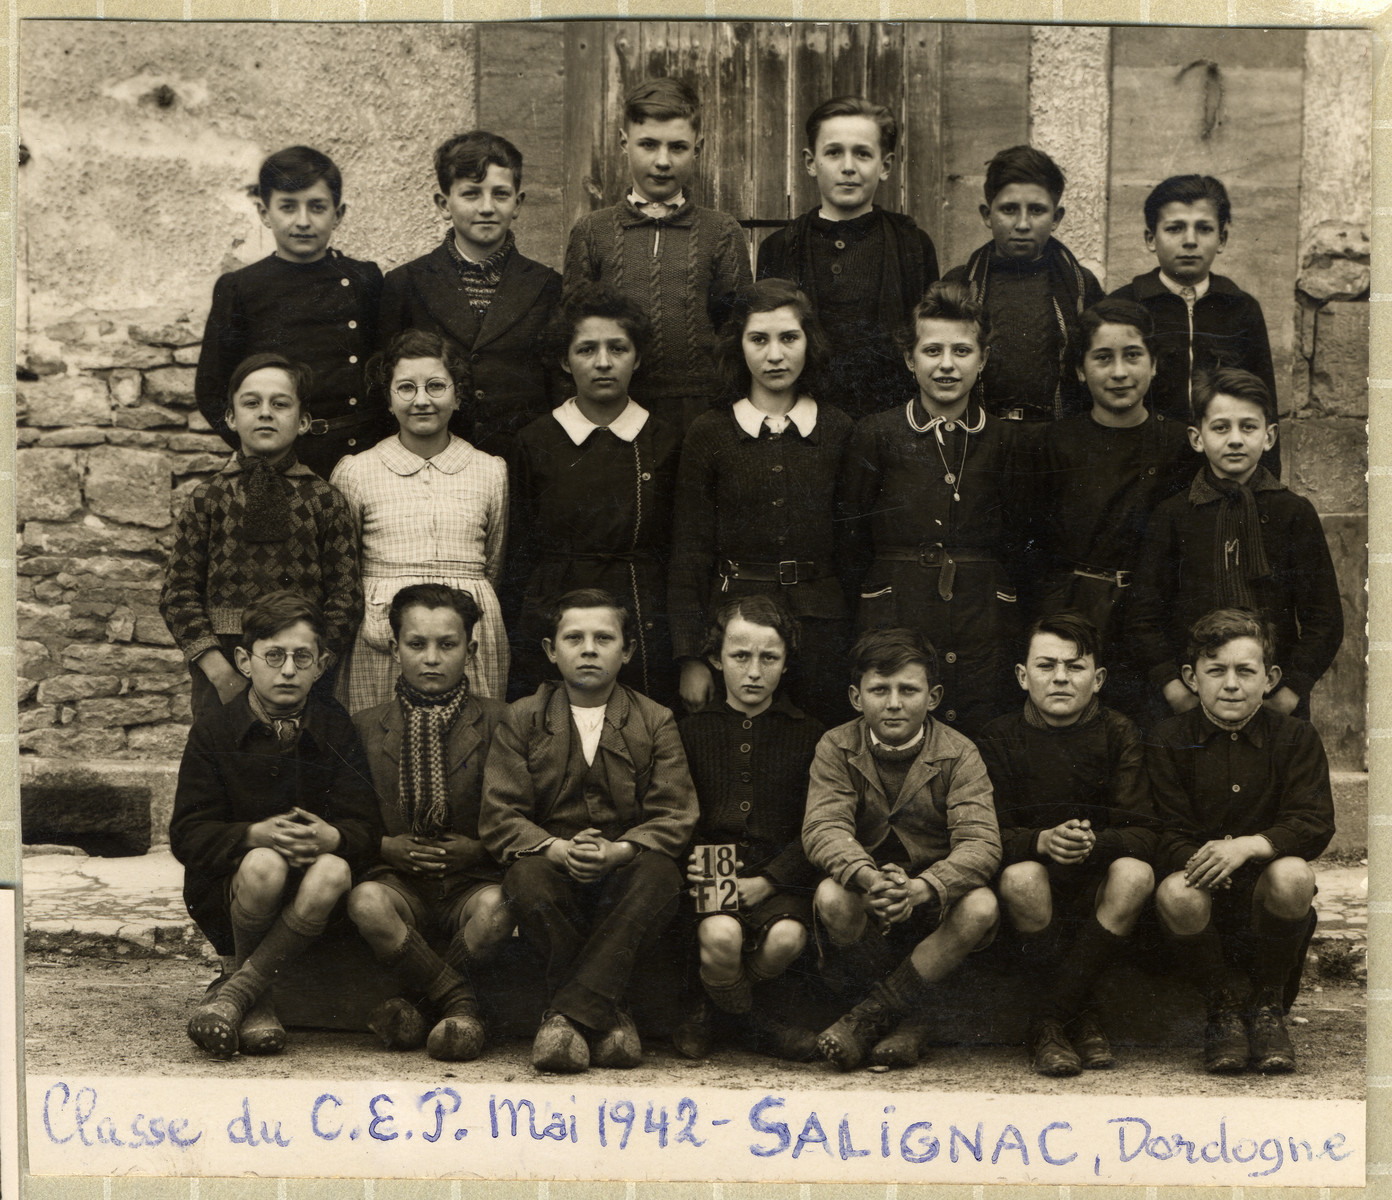 Group portrait of a school class in Salignac.  Among those pictured is Ingeborg Majewski who found shelter in the town together with her mother.